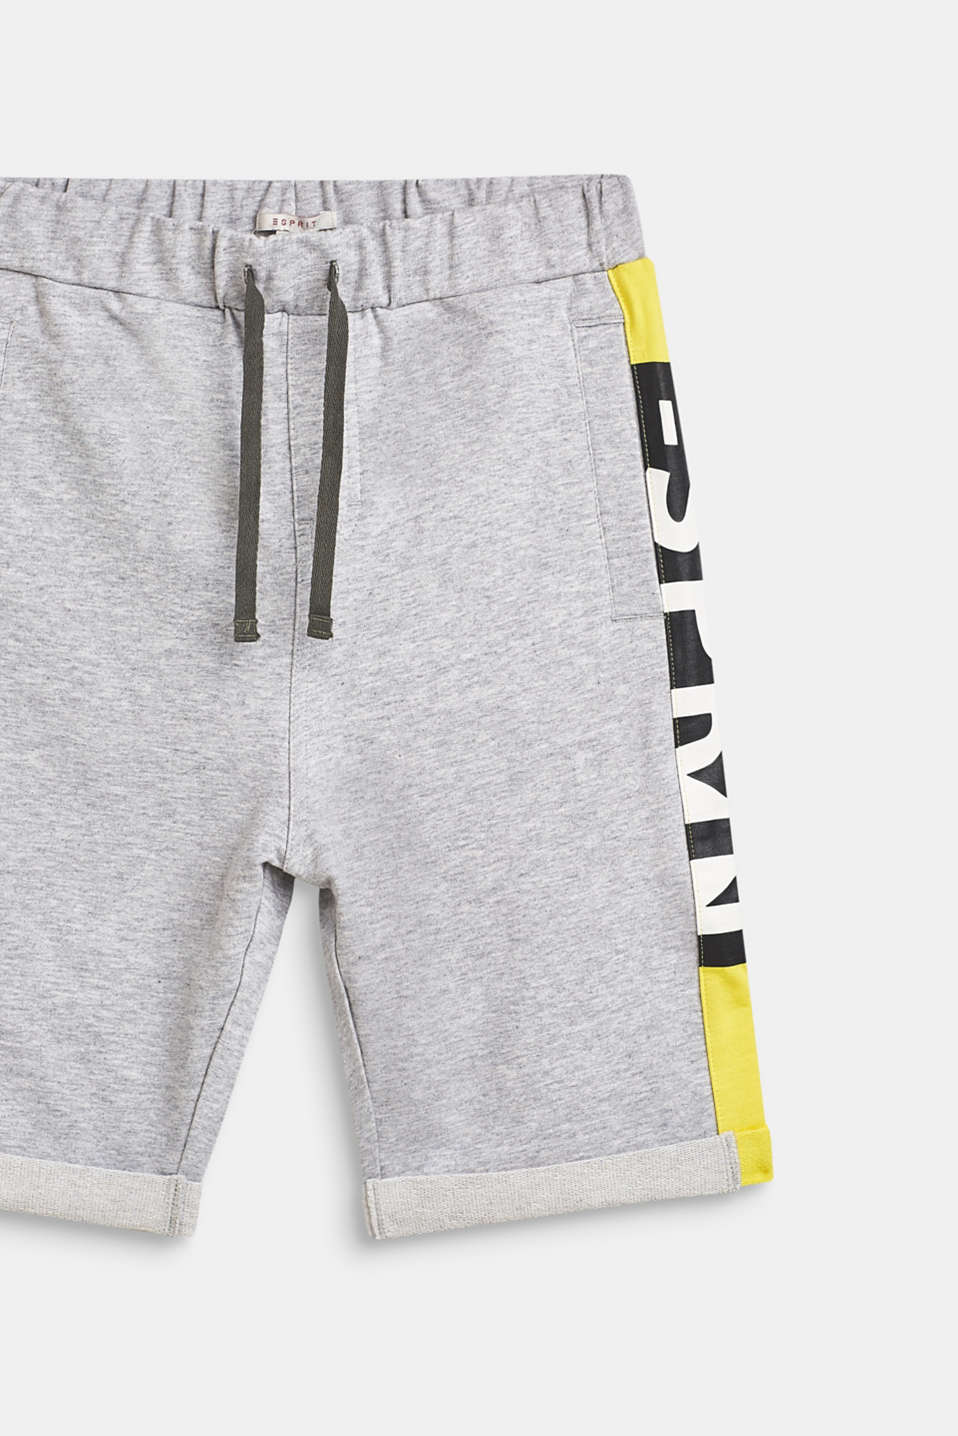 Sweatshirt shorts with a statement print, LCHEATHER SILVER, detail image number 3